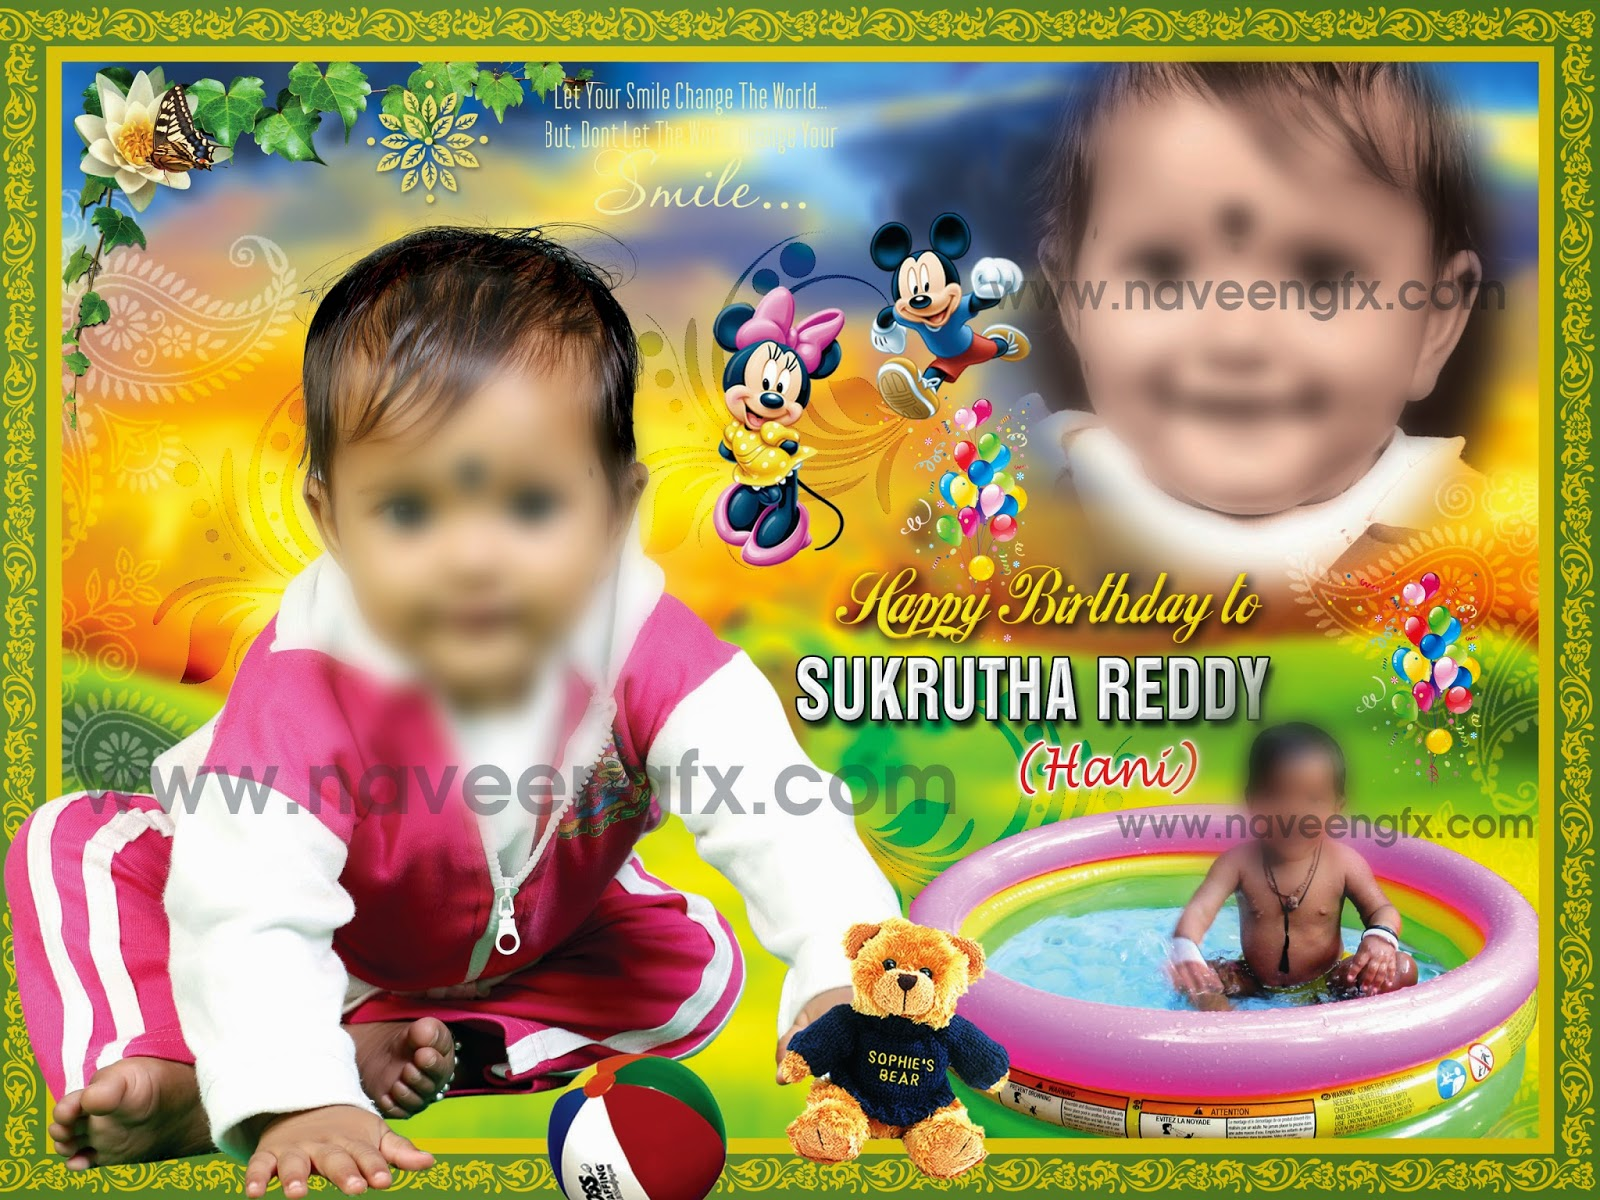 birthday banner psd templates free download ; 5x8_02